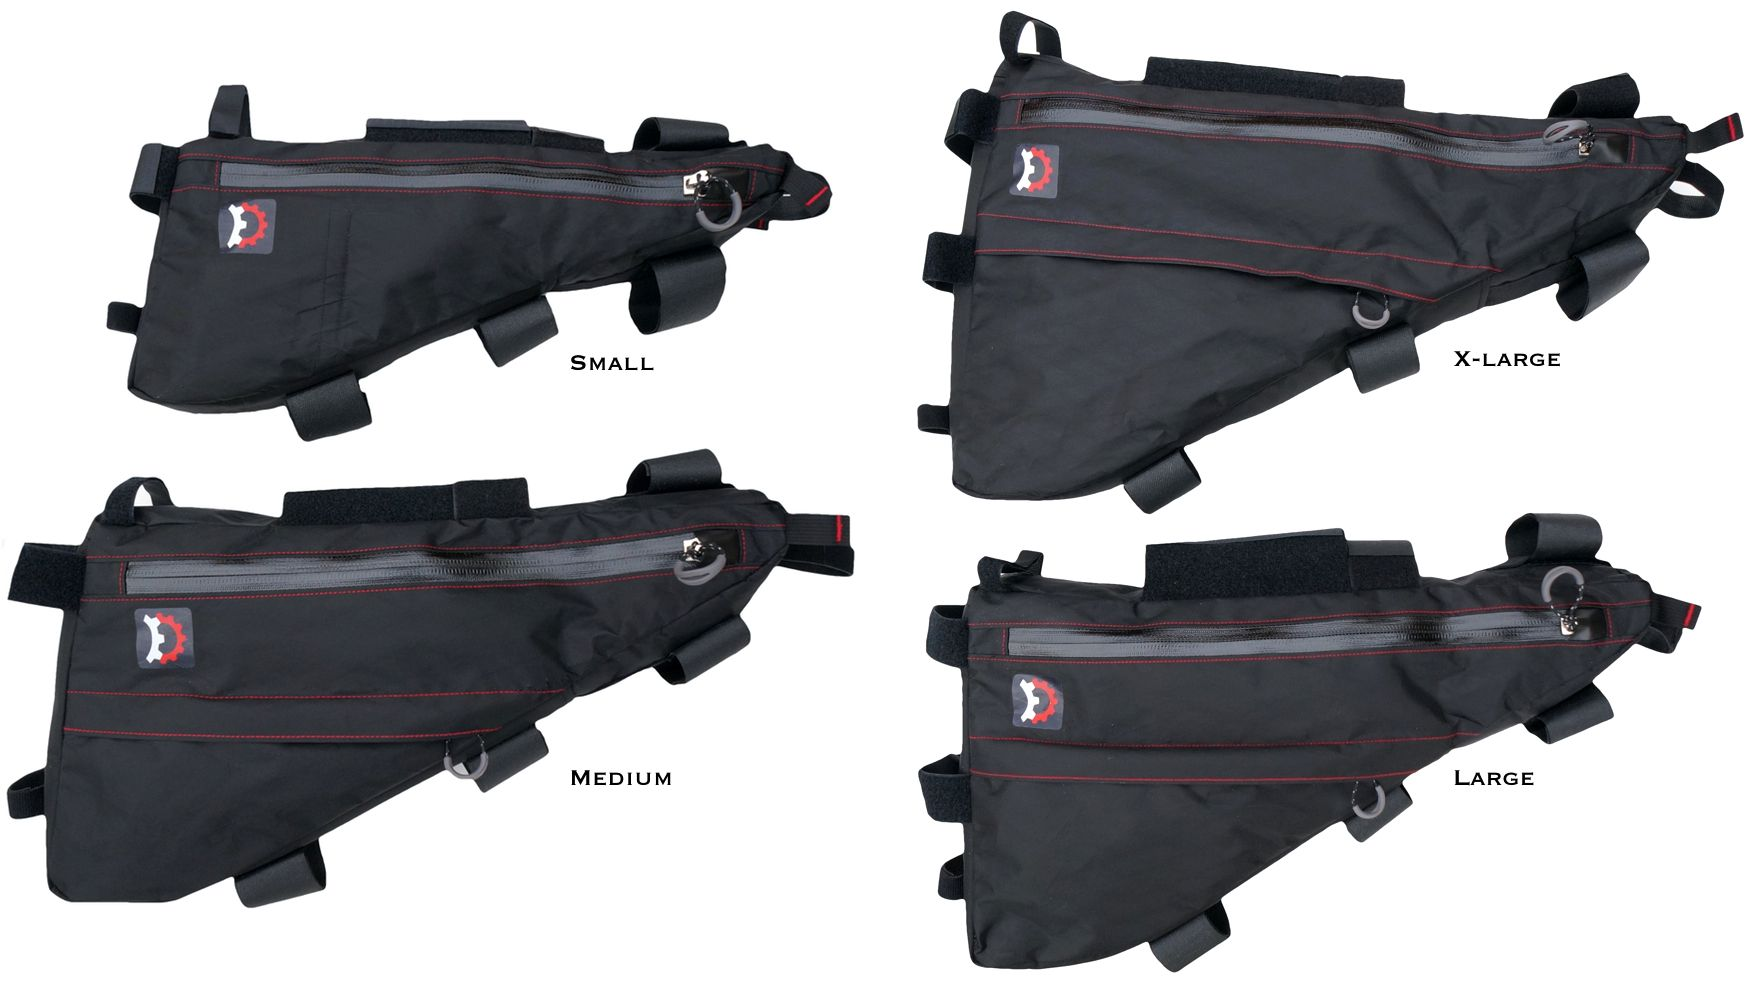 Ranger Frame Bags | Mountain Biking | Pinterest | Revelate designs ...